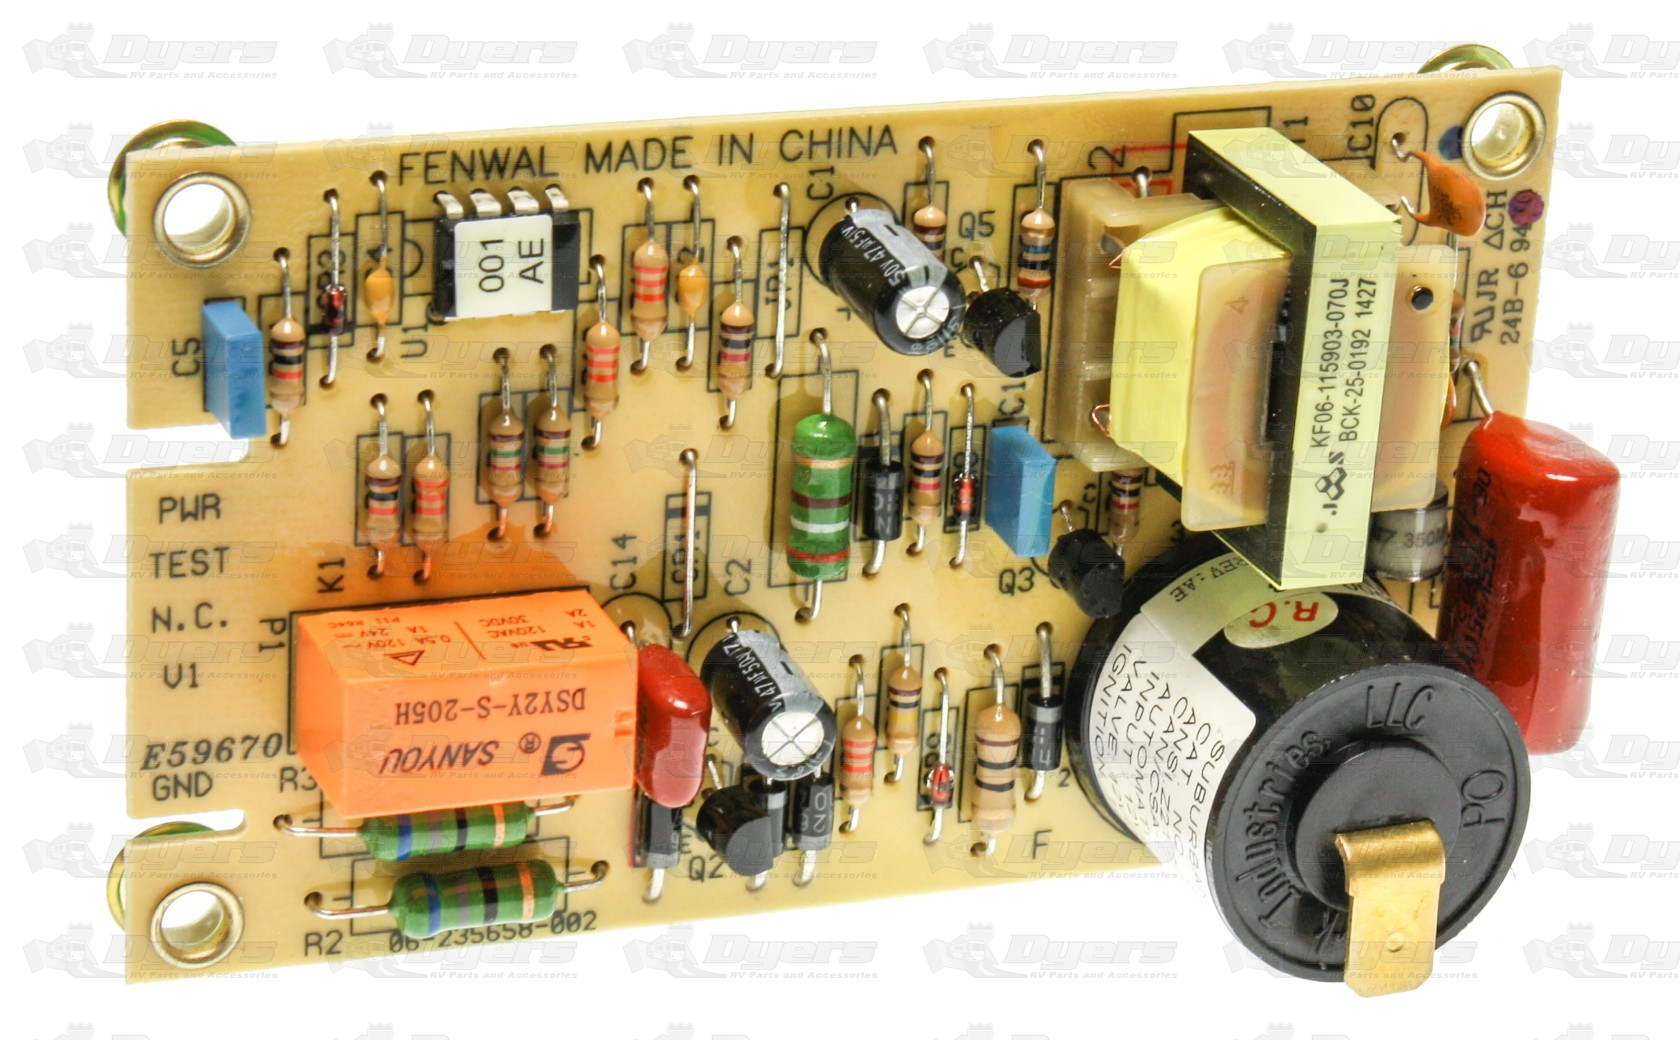 suburban_water_heater_520814_ignition_control_board 51342 7 suburban water heater 520814 ignition control board rvpartsexpress com Suburban SW10DE Water Heater Manual at nearapp.co